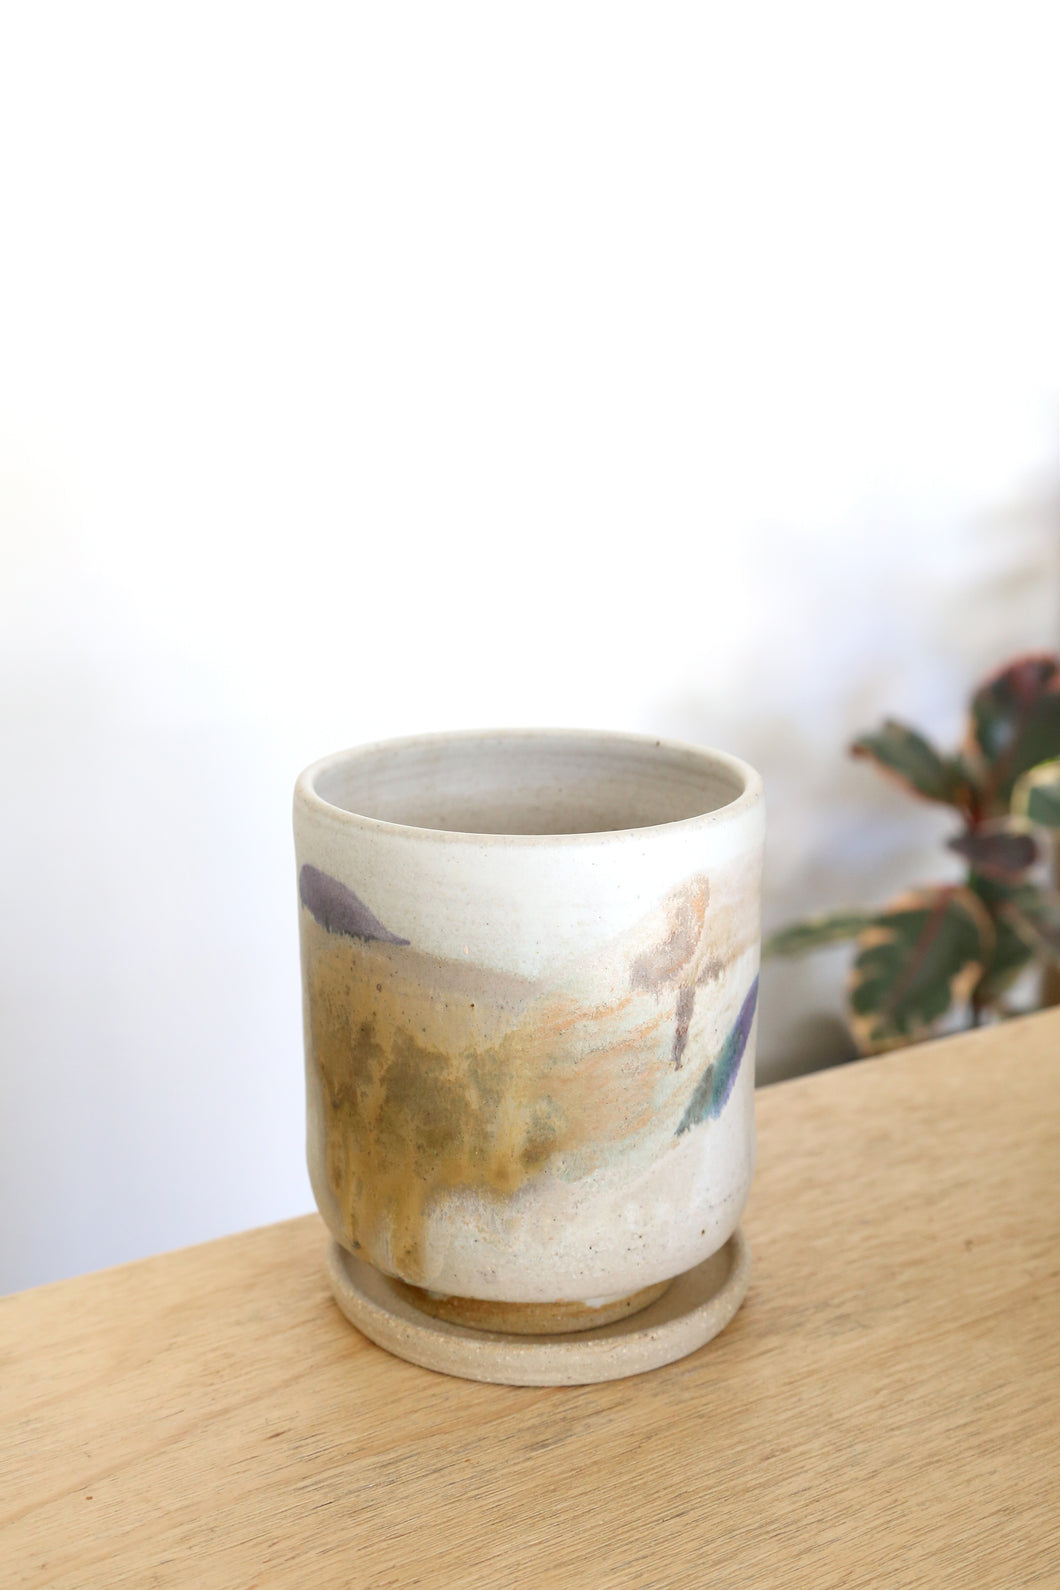 Emi Ceramics Planter - Mottled Glaze